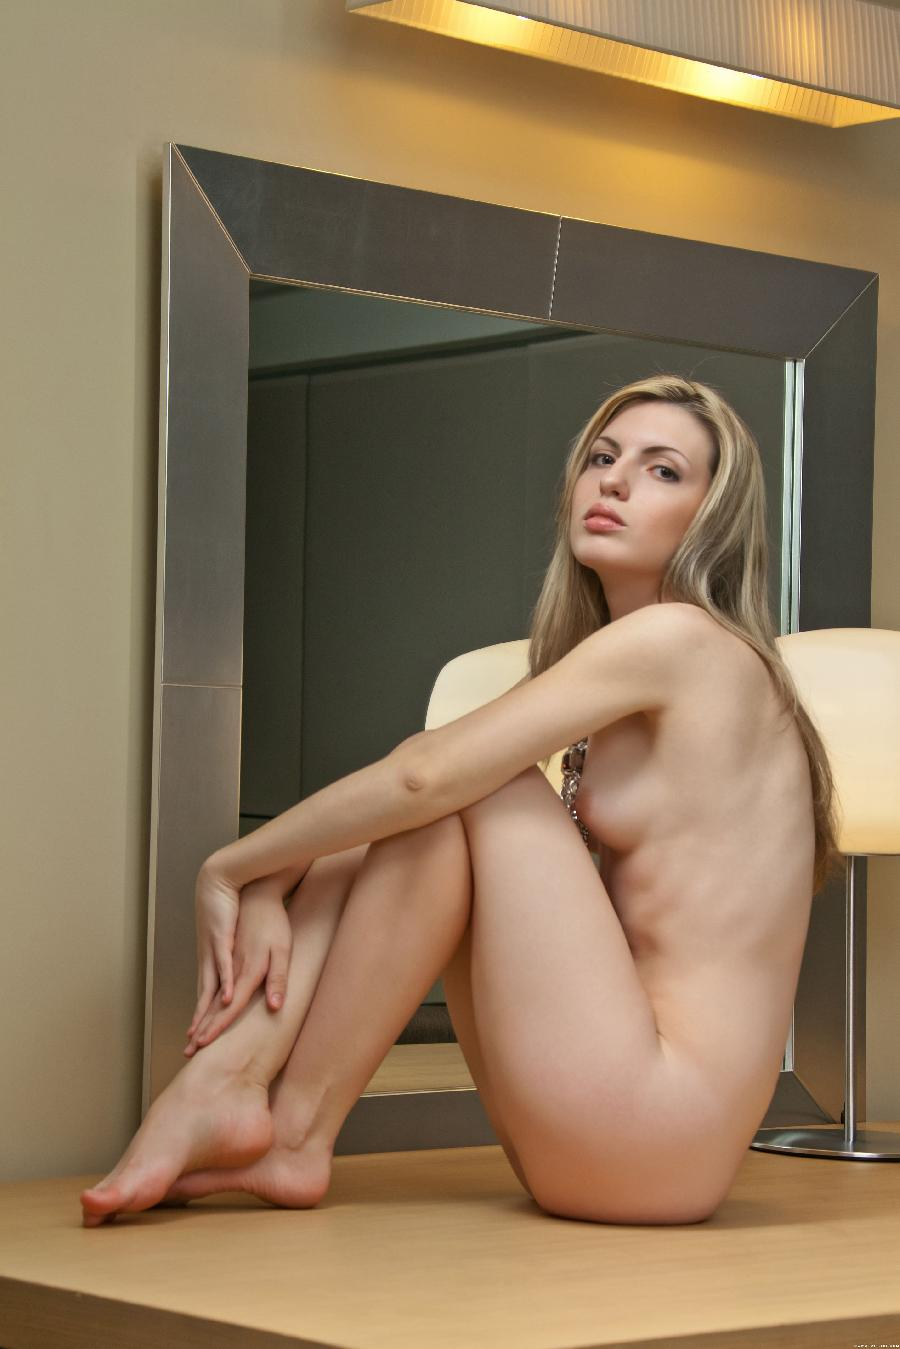 Blond woman with hard look - Maggie - 4